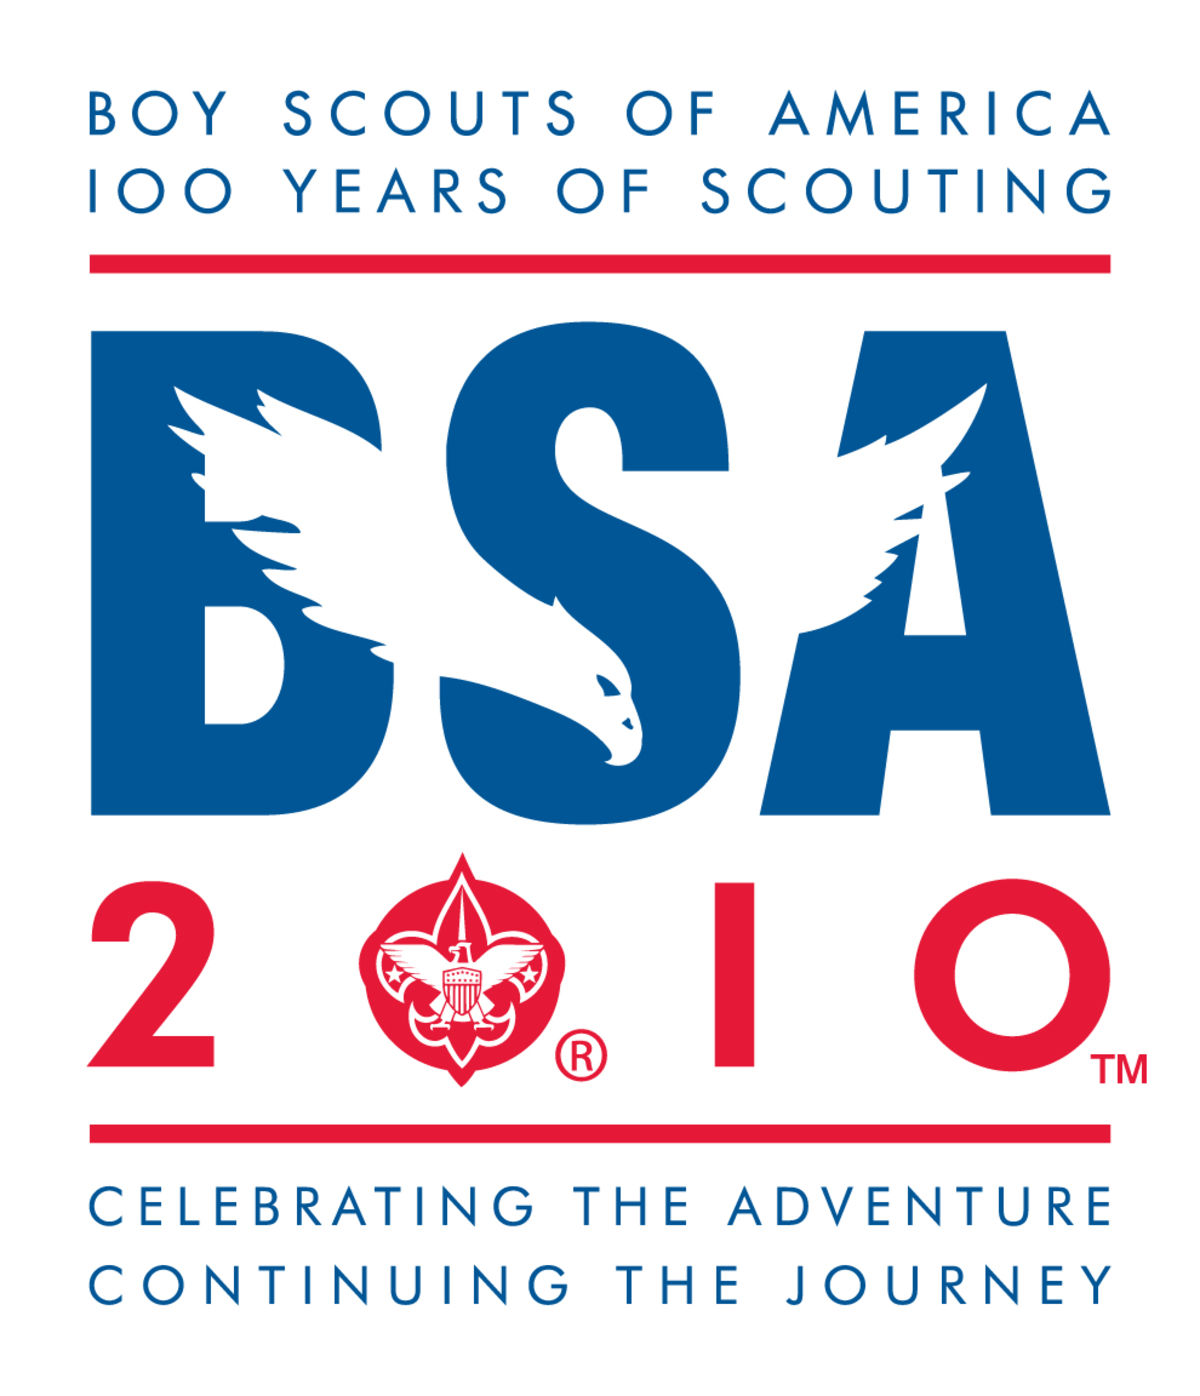 Should all boys become boy scouts? | Psychology Today